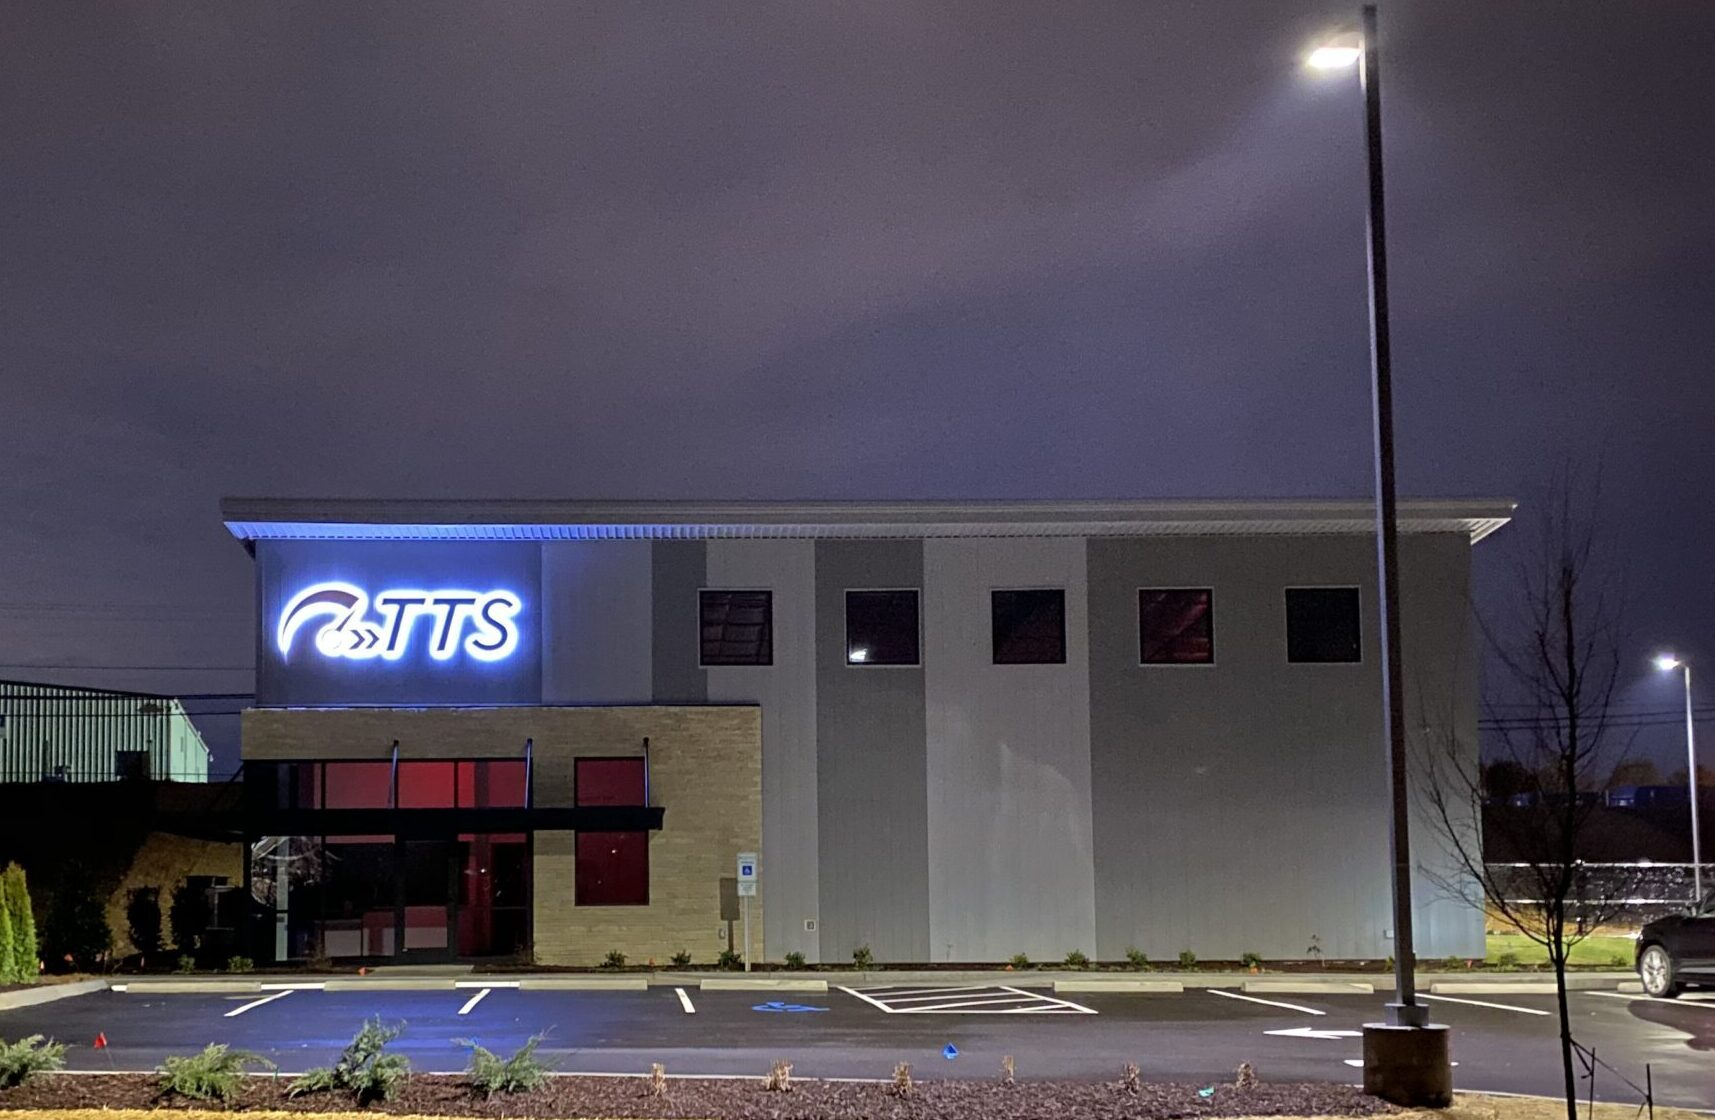 Outside of TTS facility at night